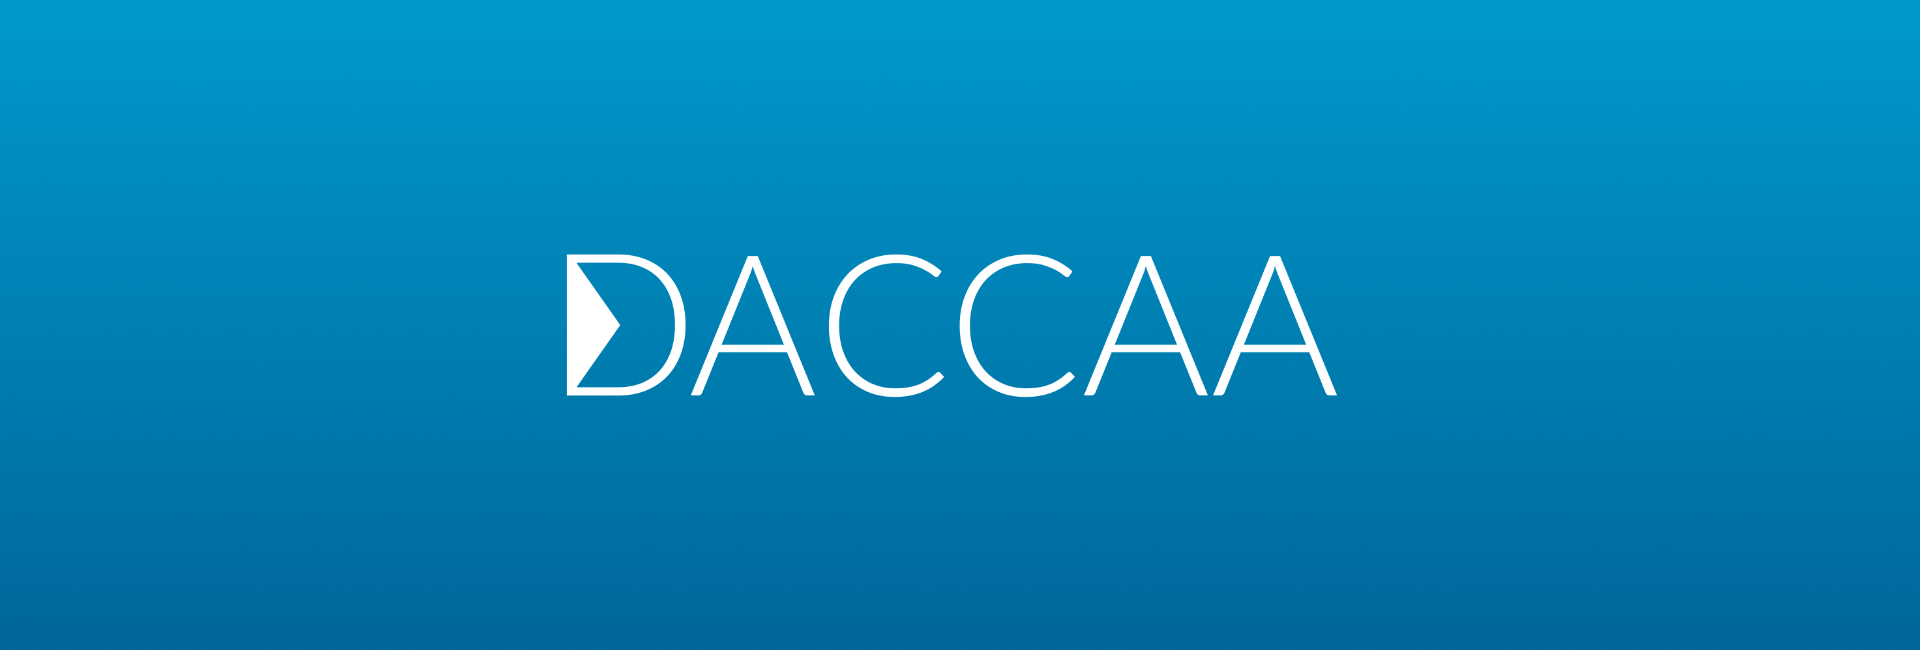 The current DACCAA Logo with its triangular D